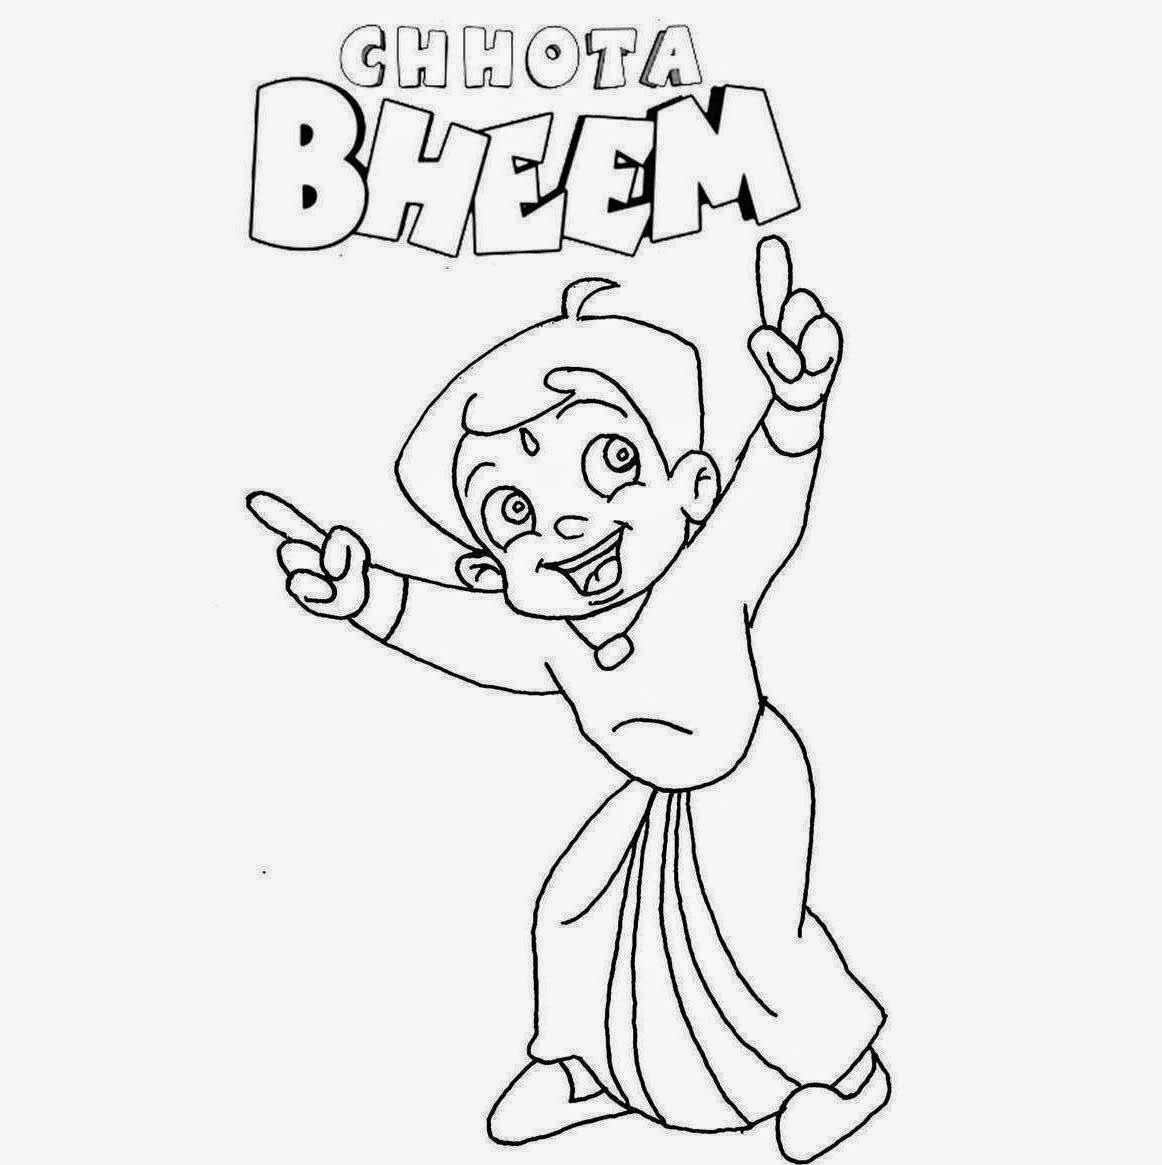 chota bheem drawing for coloring pages | Colour Drawing Free HD Wallpapers: Chota Bheem For Kid ...